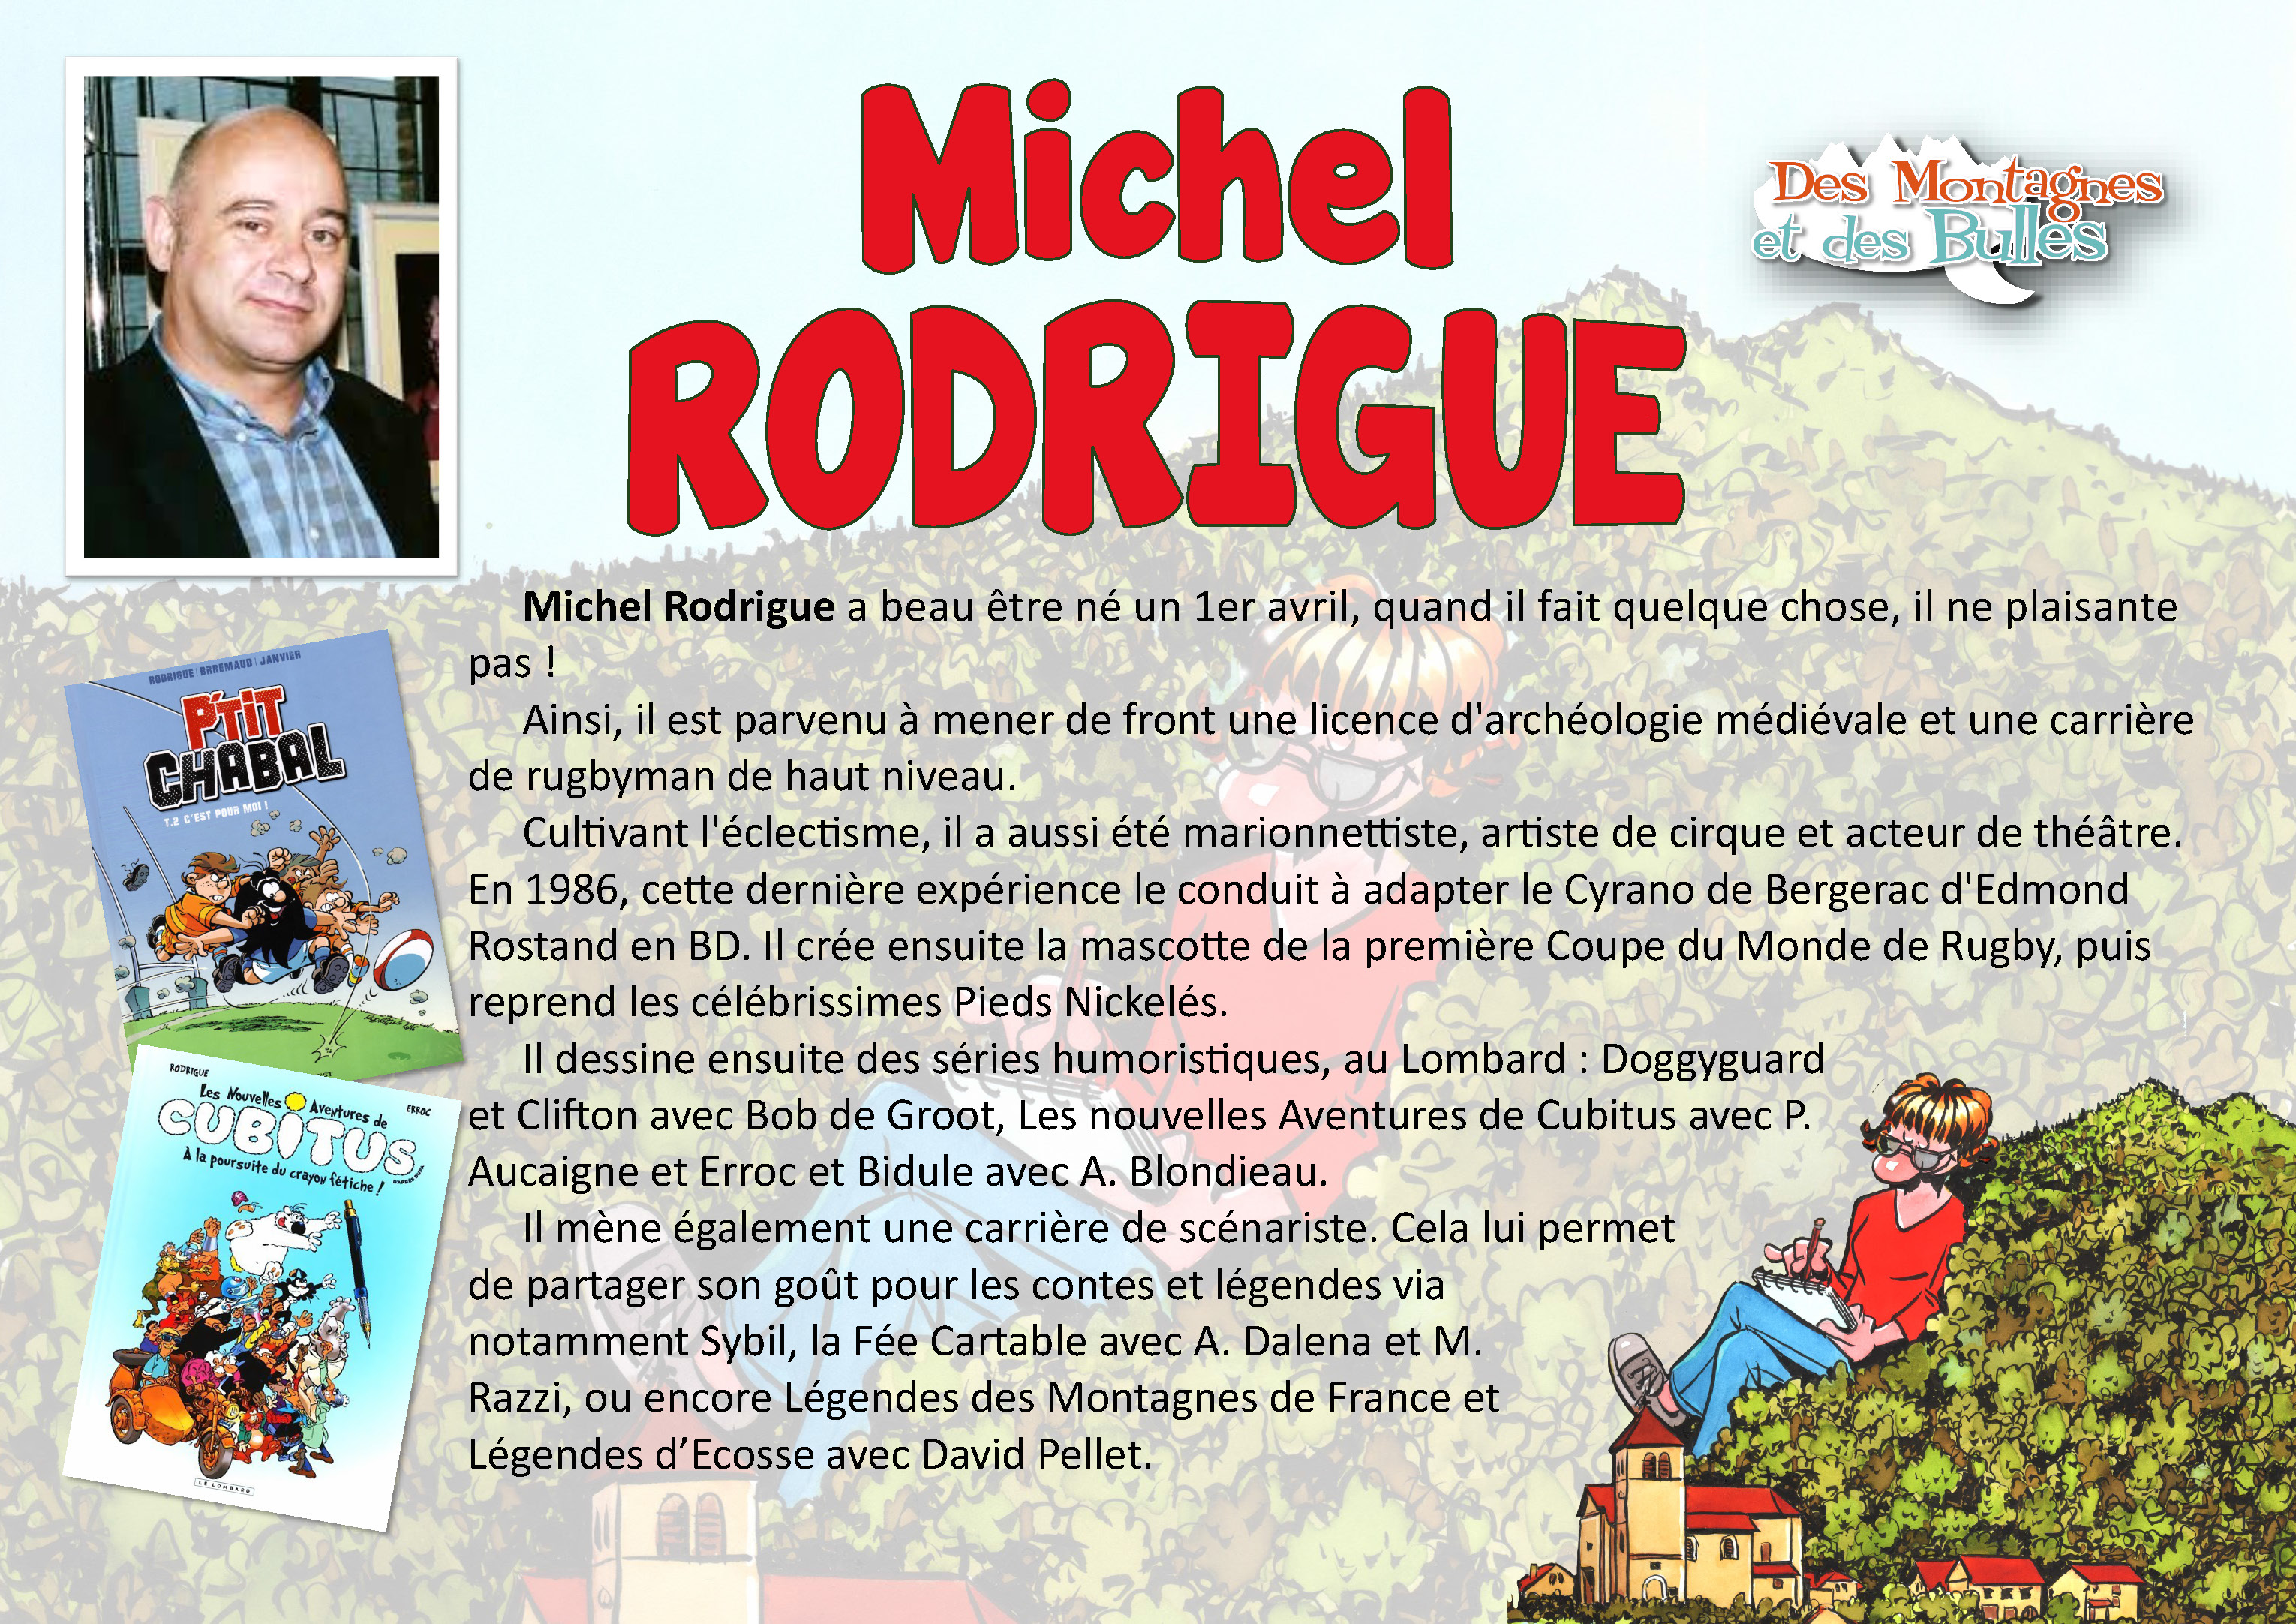 Michel Rodrigue